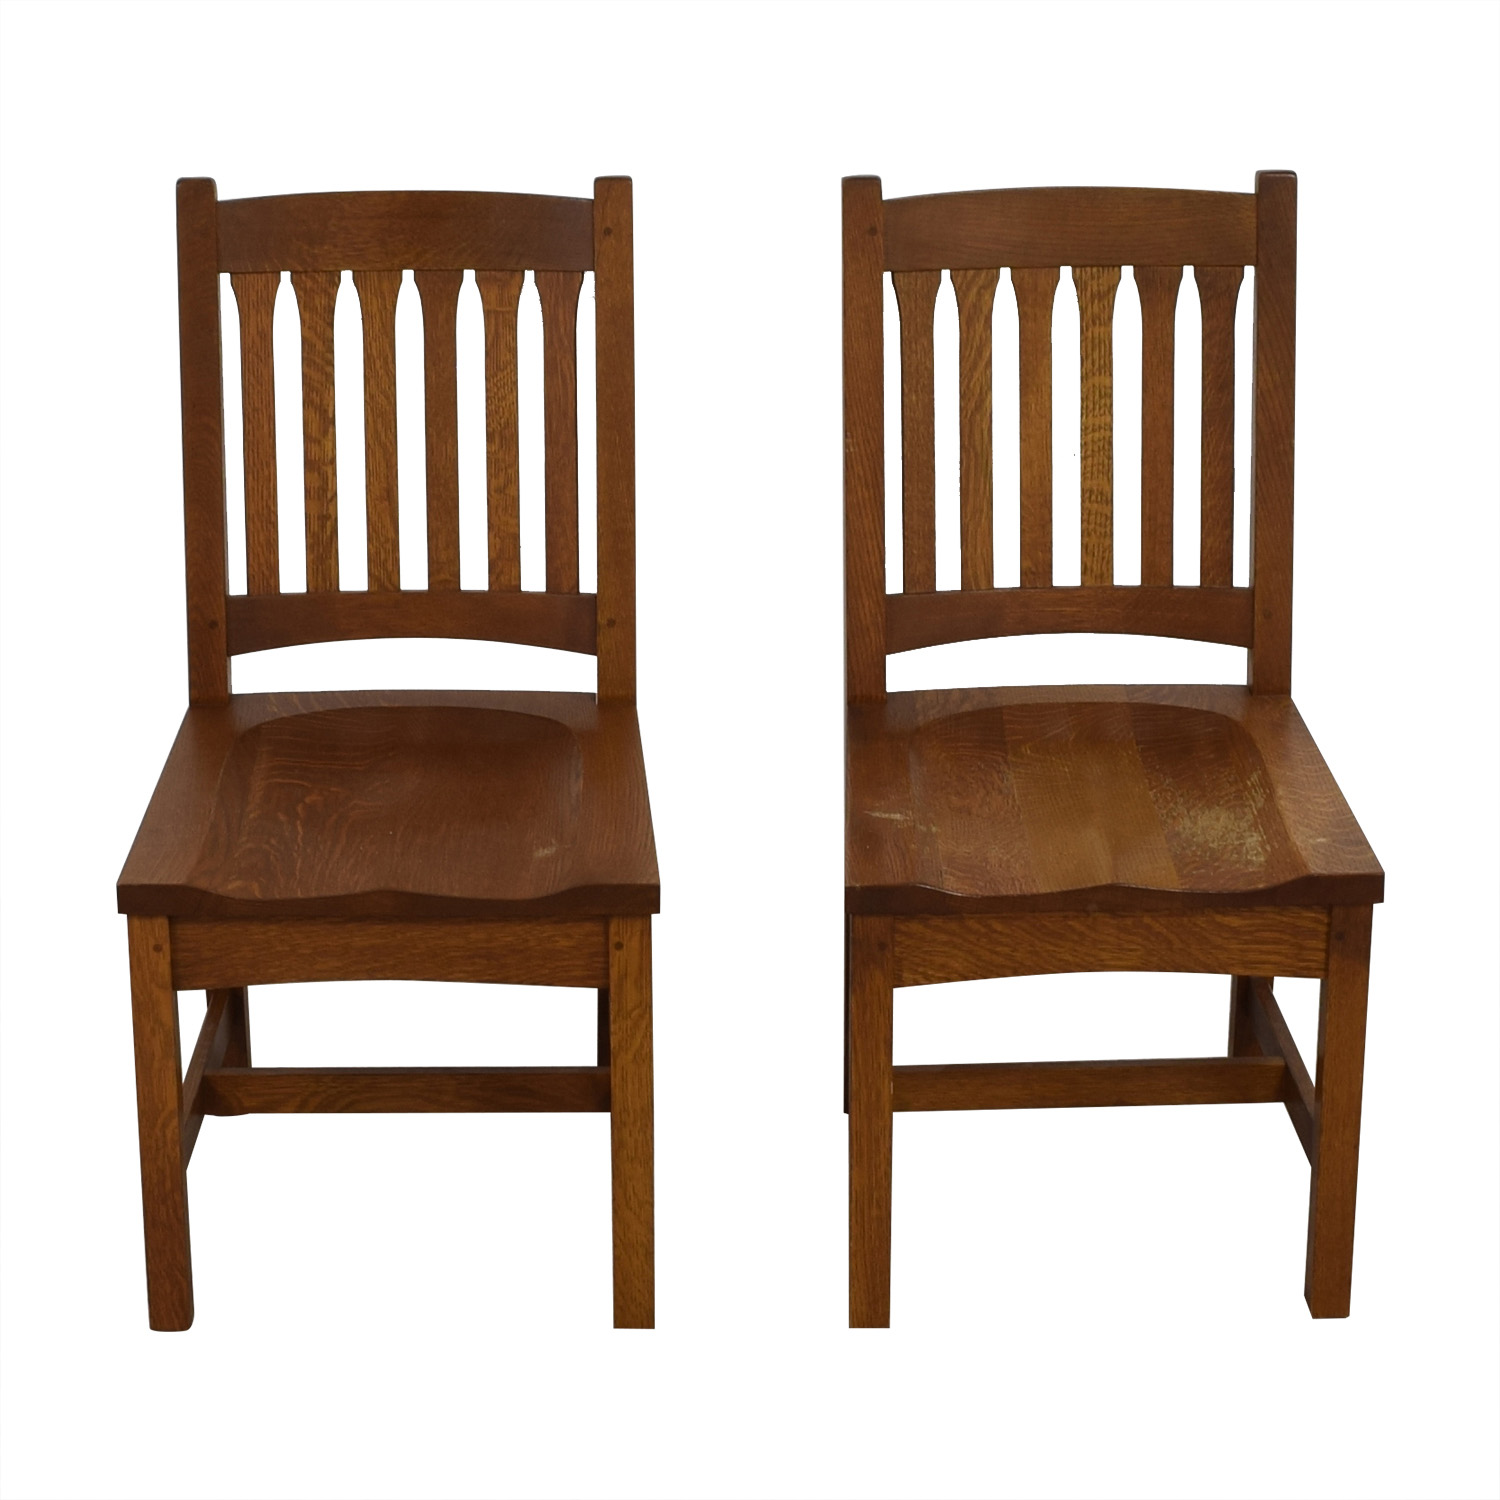 Stickley Audi & Co Stickley Audi & Co Handcrafted Wooden Chairs dimensions